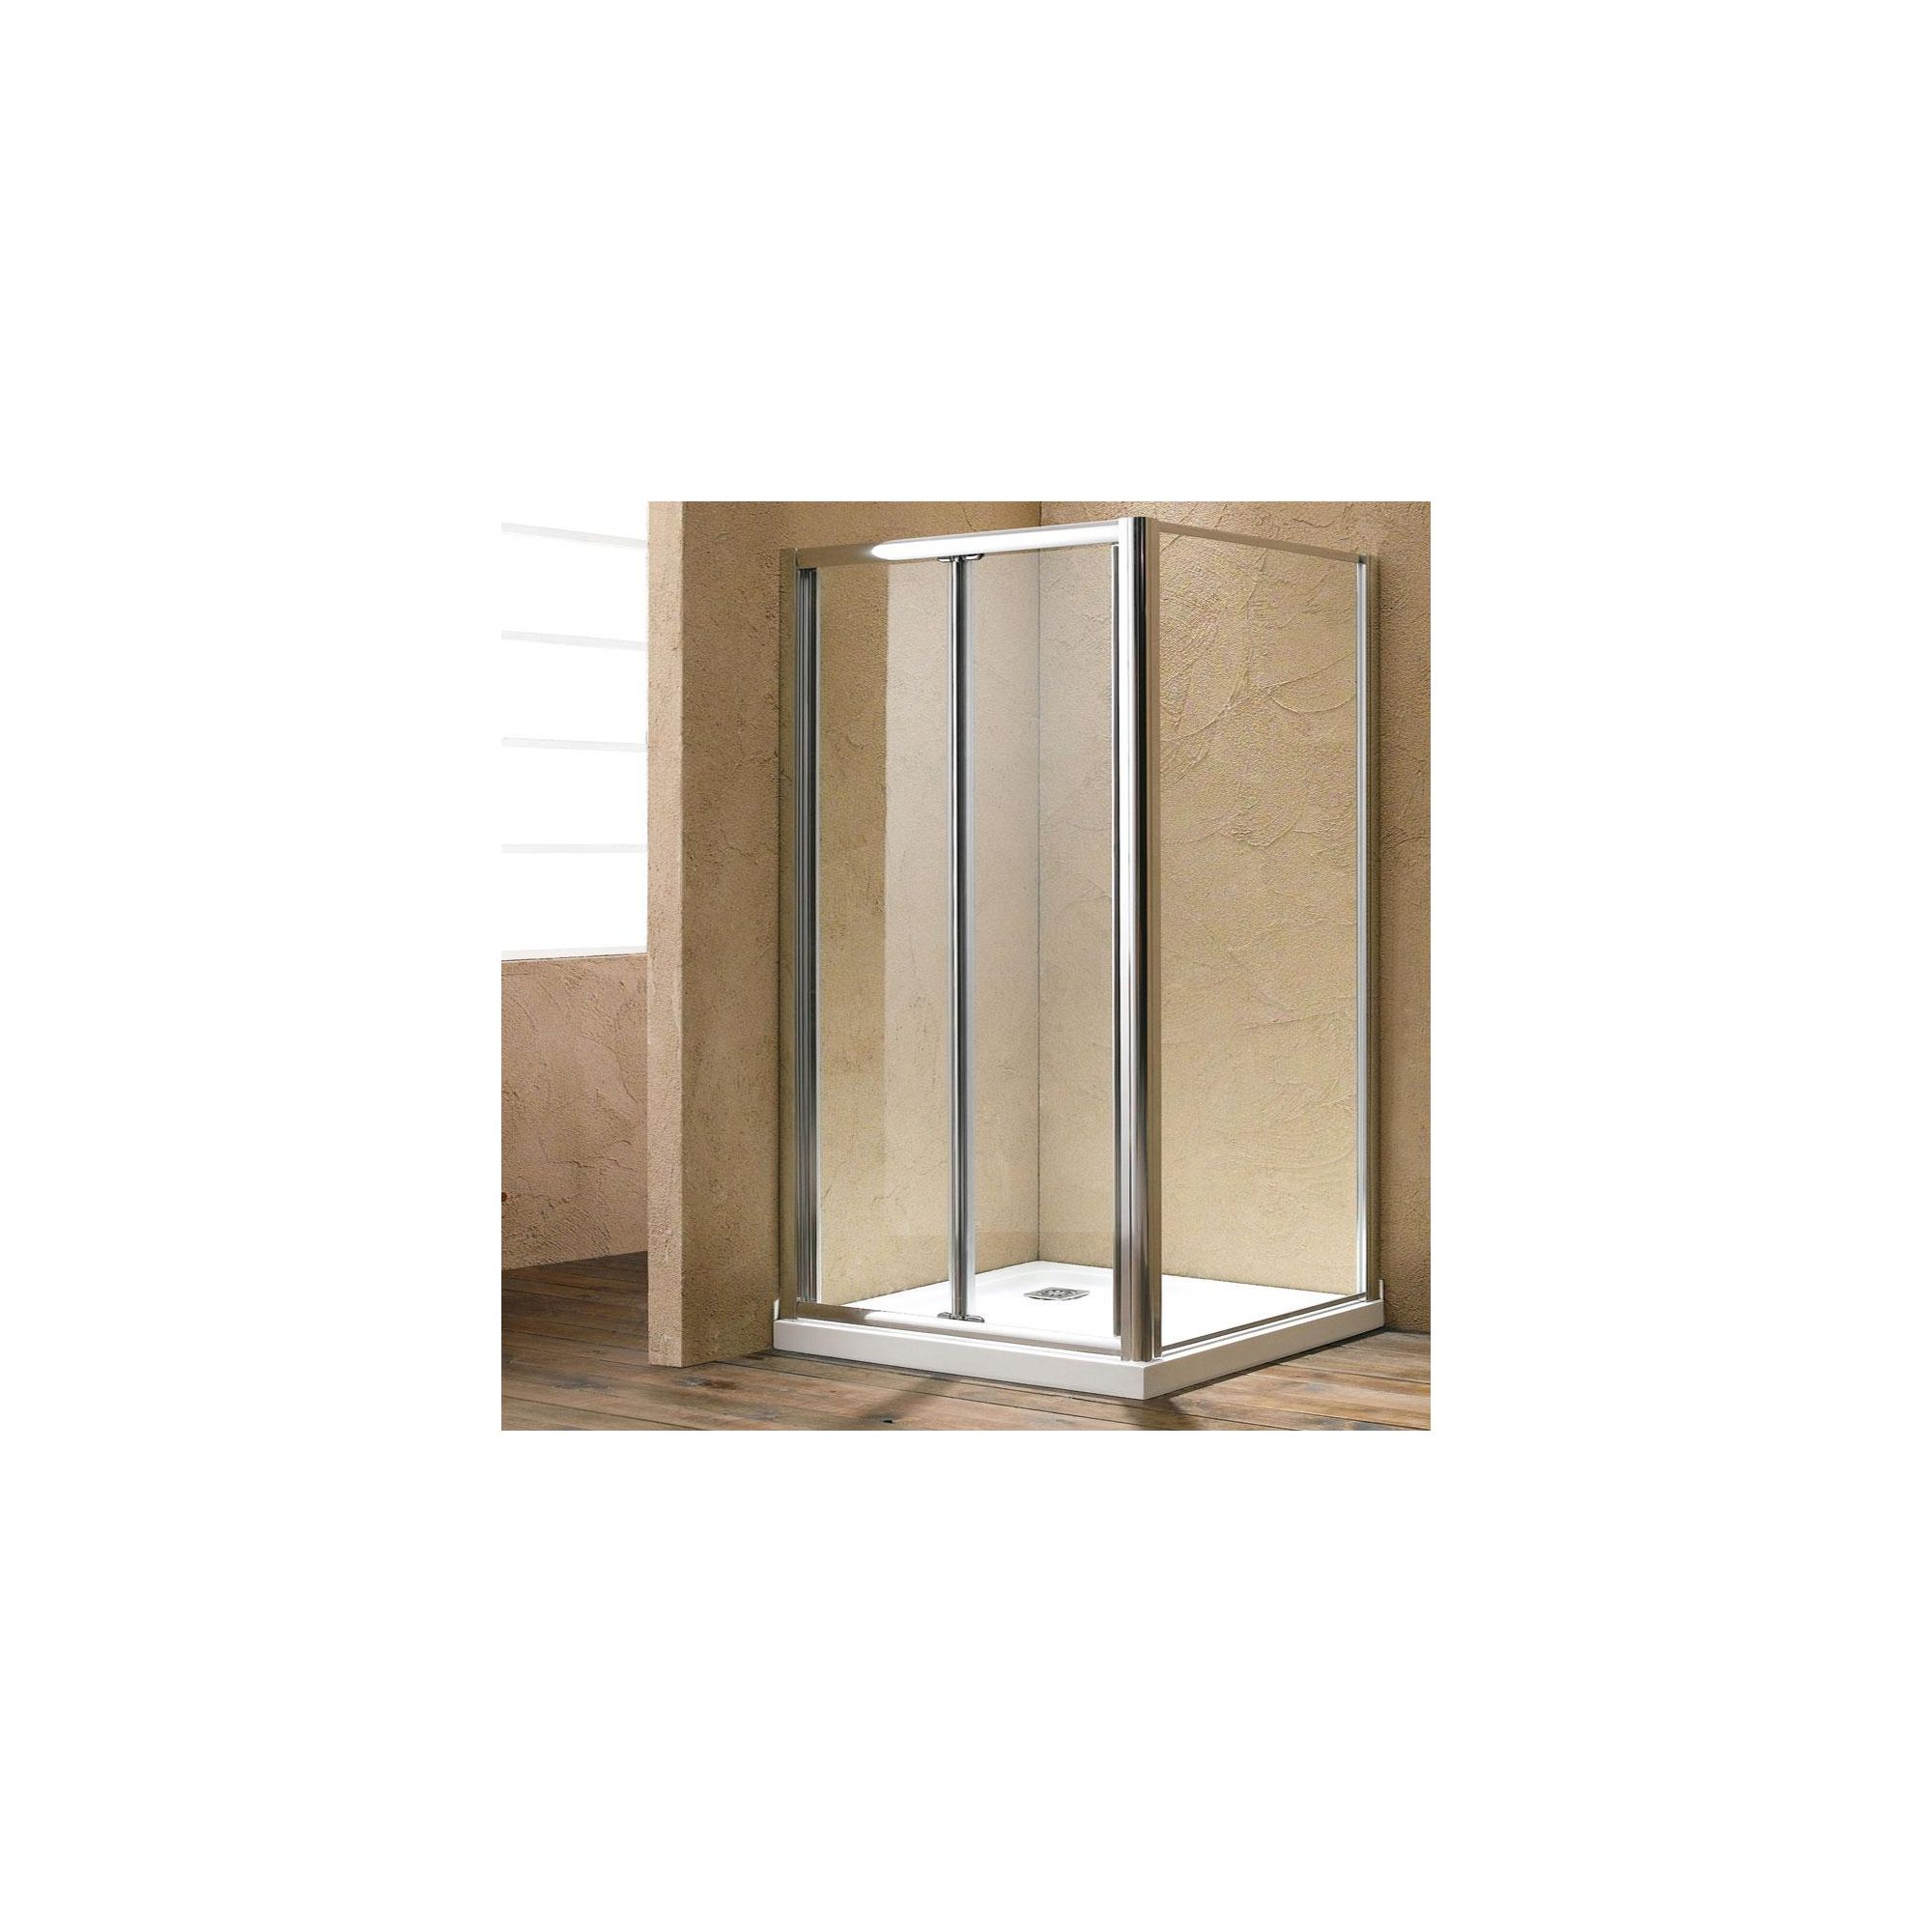 Duchy Style Twin Bi-Fold Door Shower Enclosure, 1200mm x 760mm, 6mm Glass, Low Profile Tray at Tesco Direct